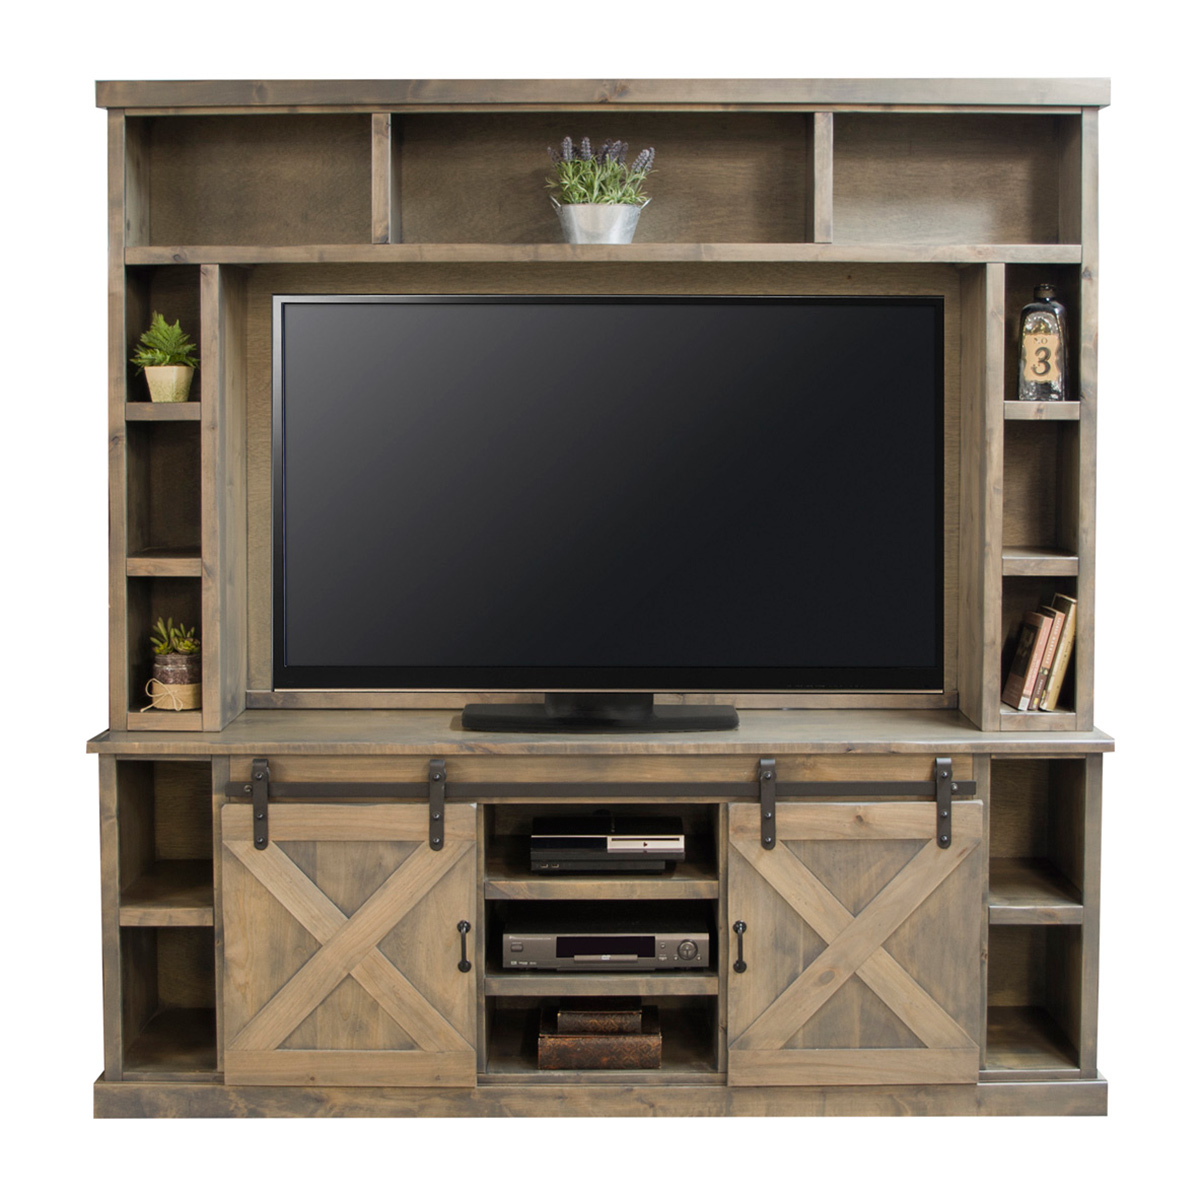 Home Entertainment Wall Units home theater wall units & entertainment centers at dynamic home decor